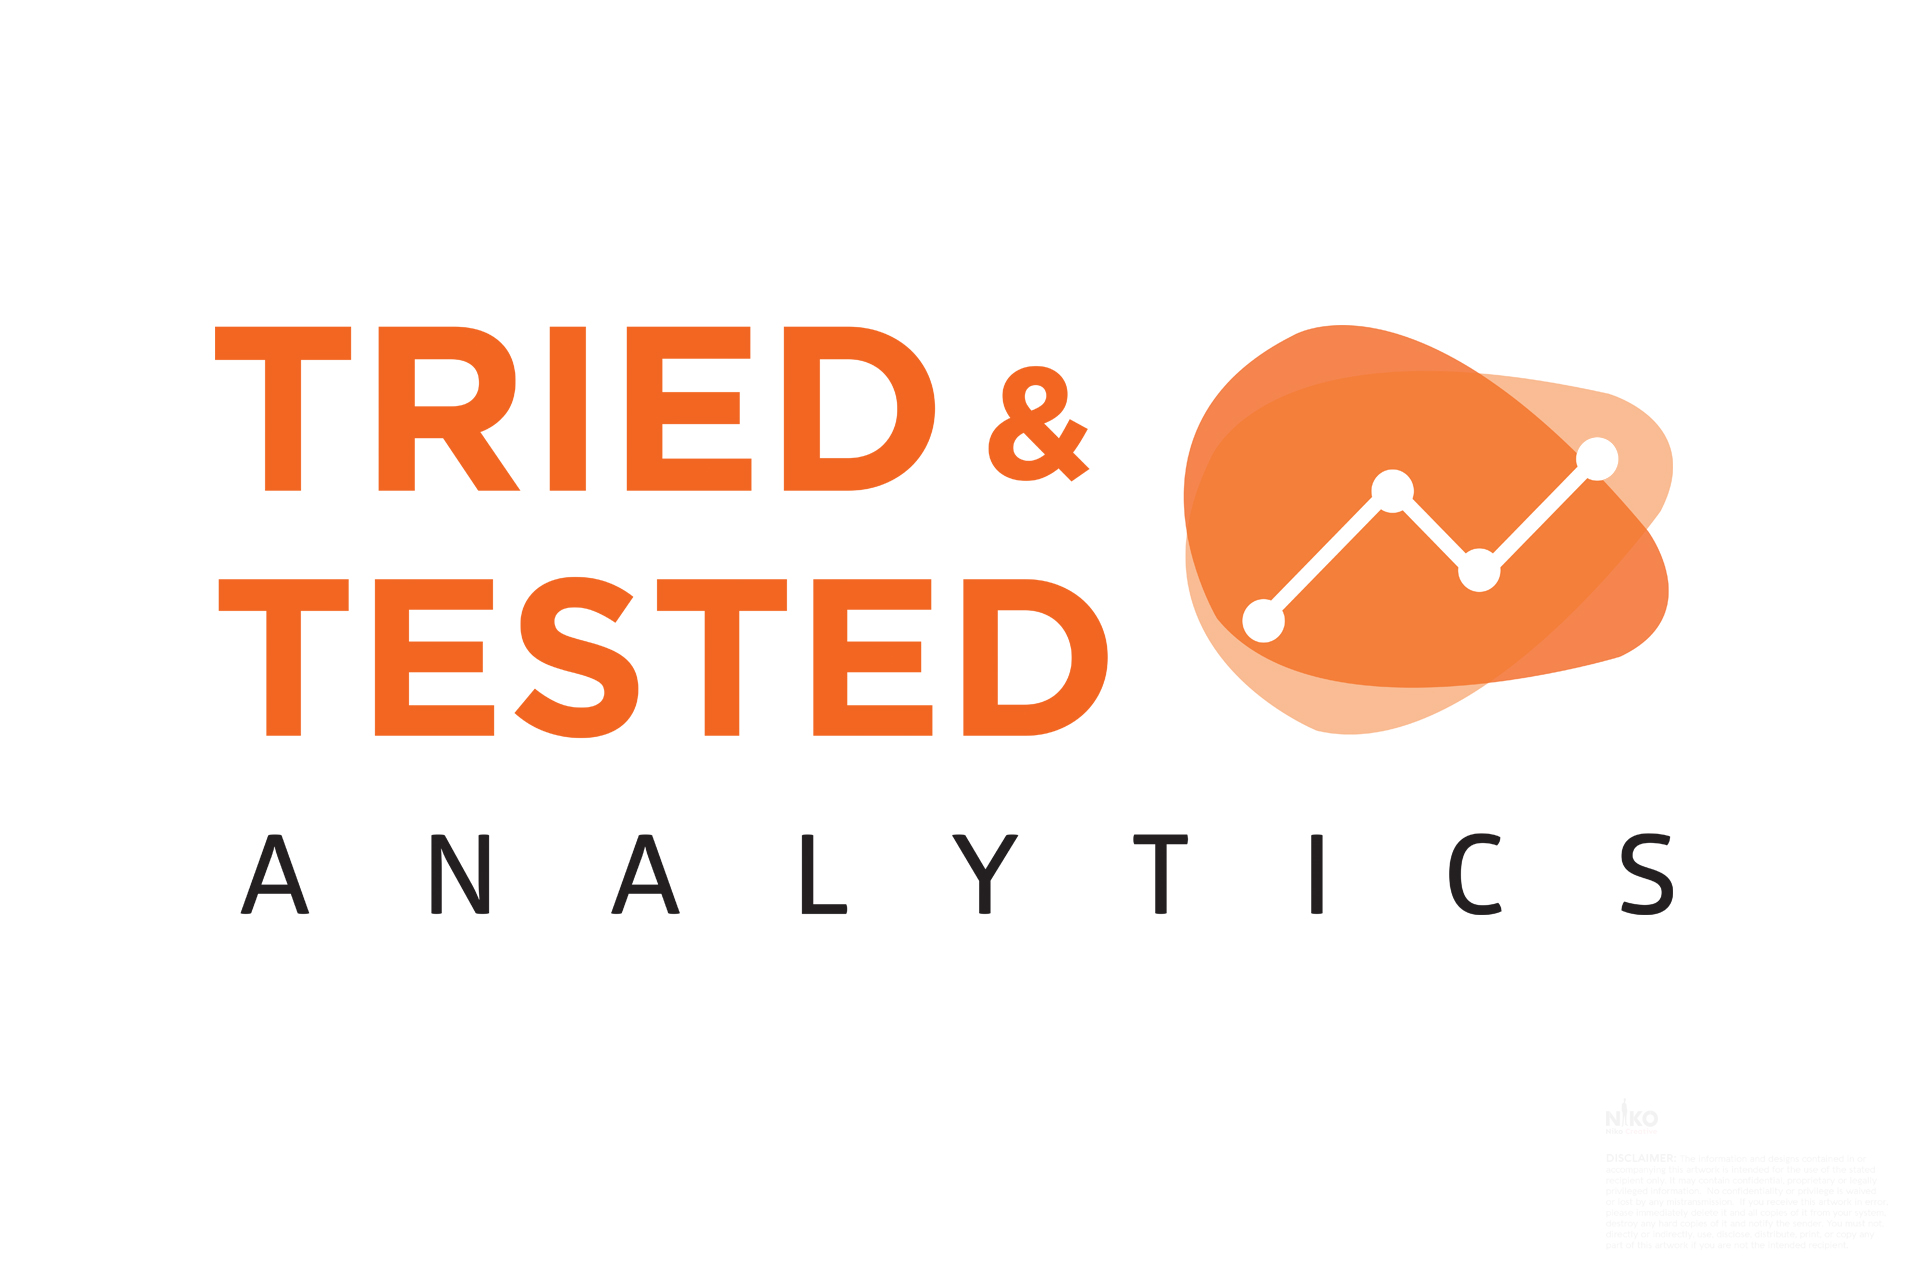 Day 28 Tried &Tested Analytics